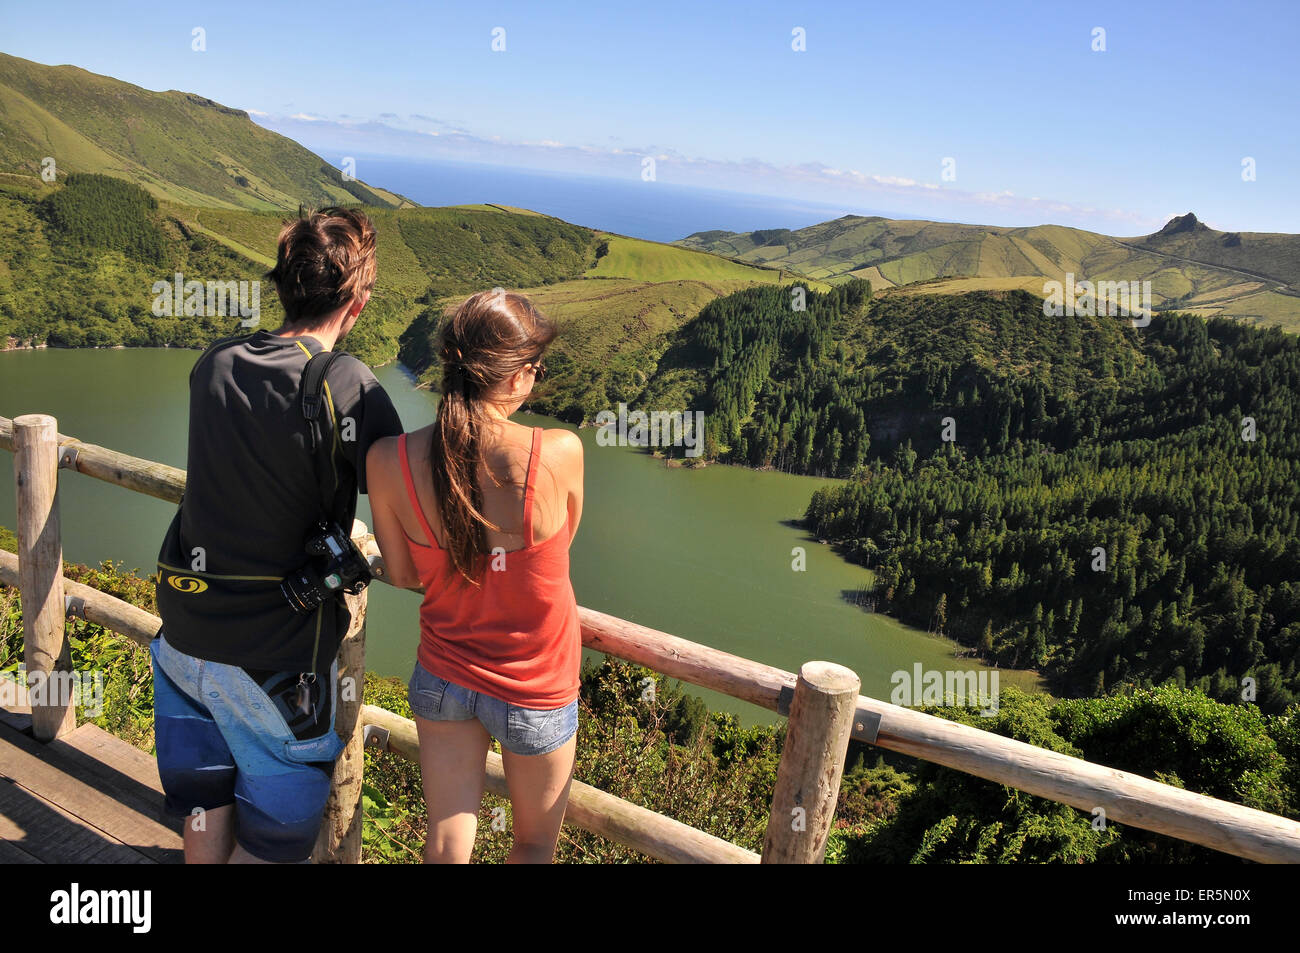 Young couple enjoying the view, Caldeira Funda, Island of Flores, Azores, Portugal Stock Photo